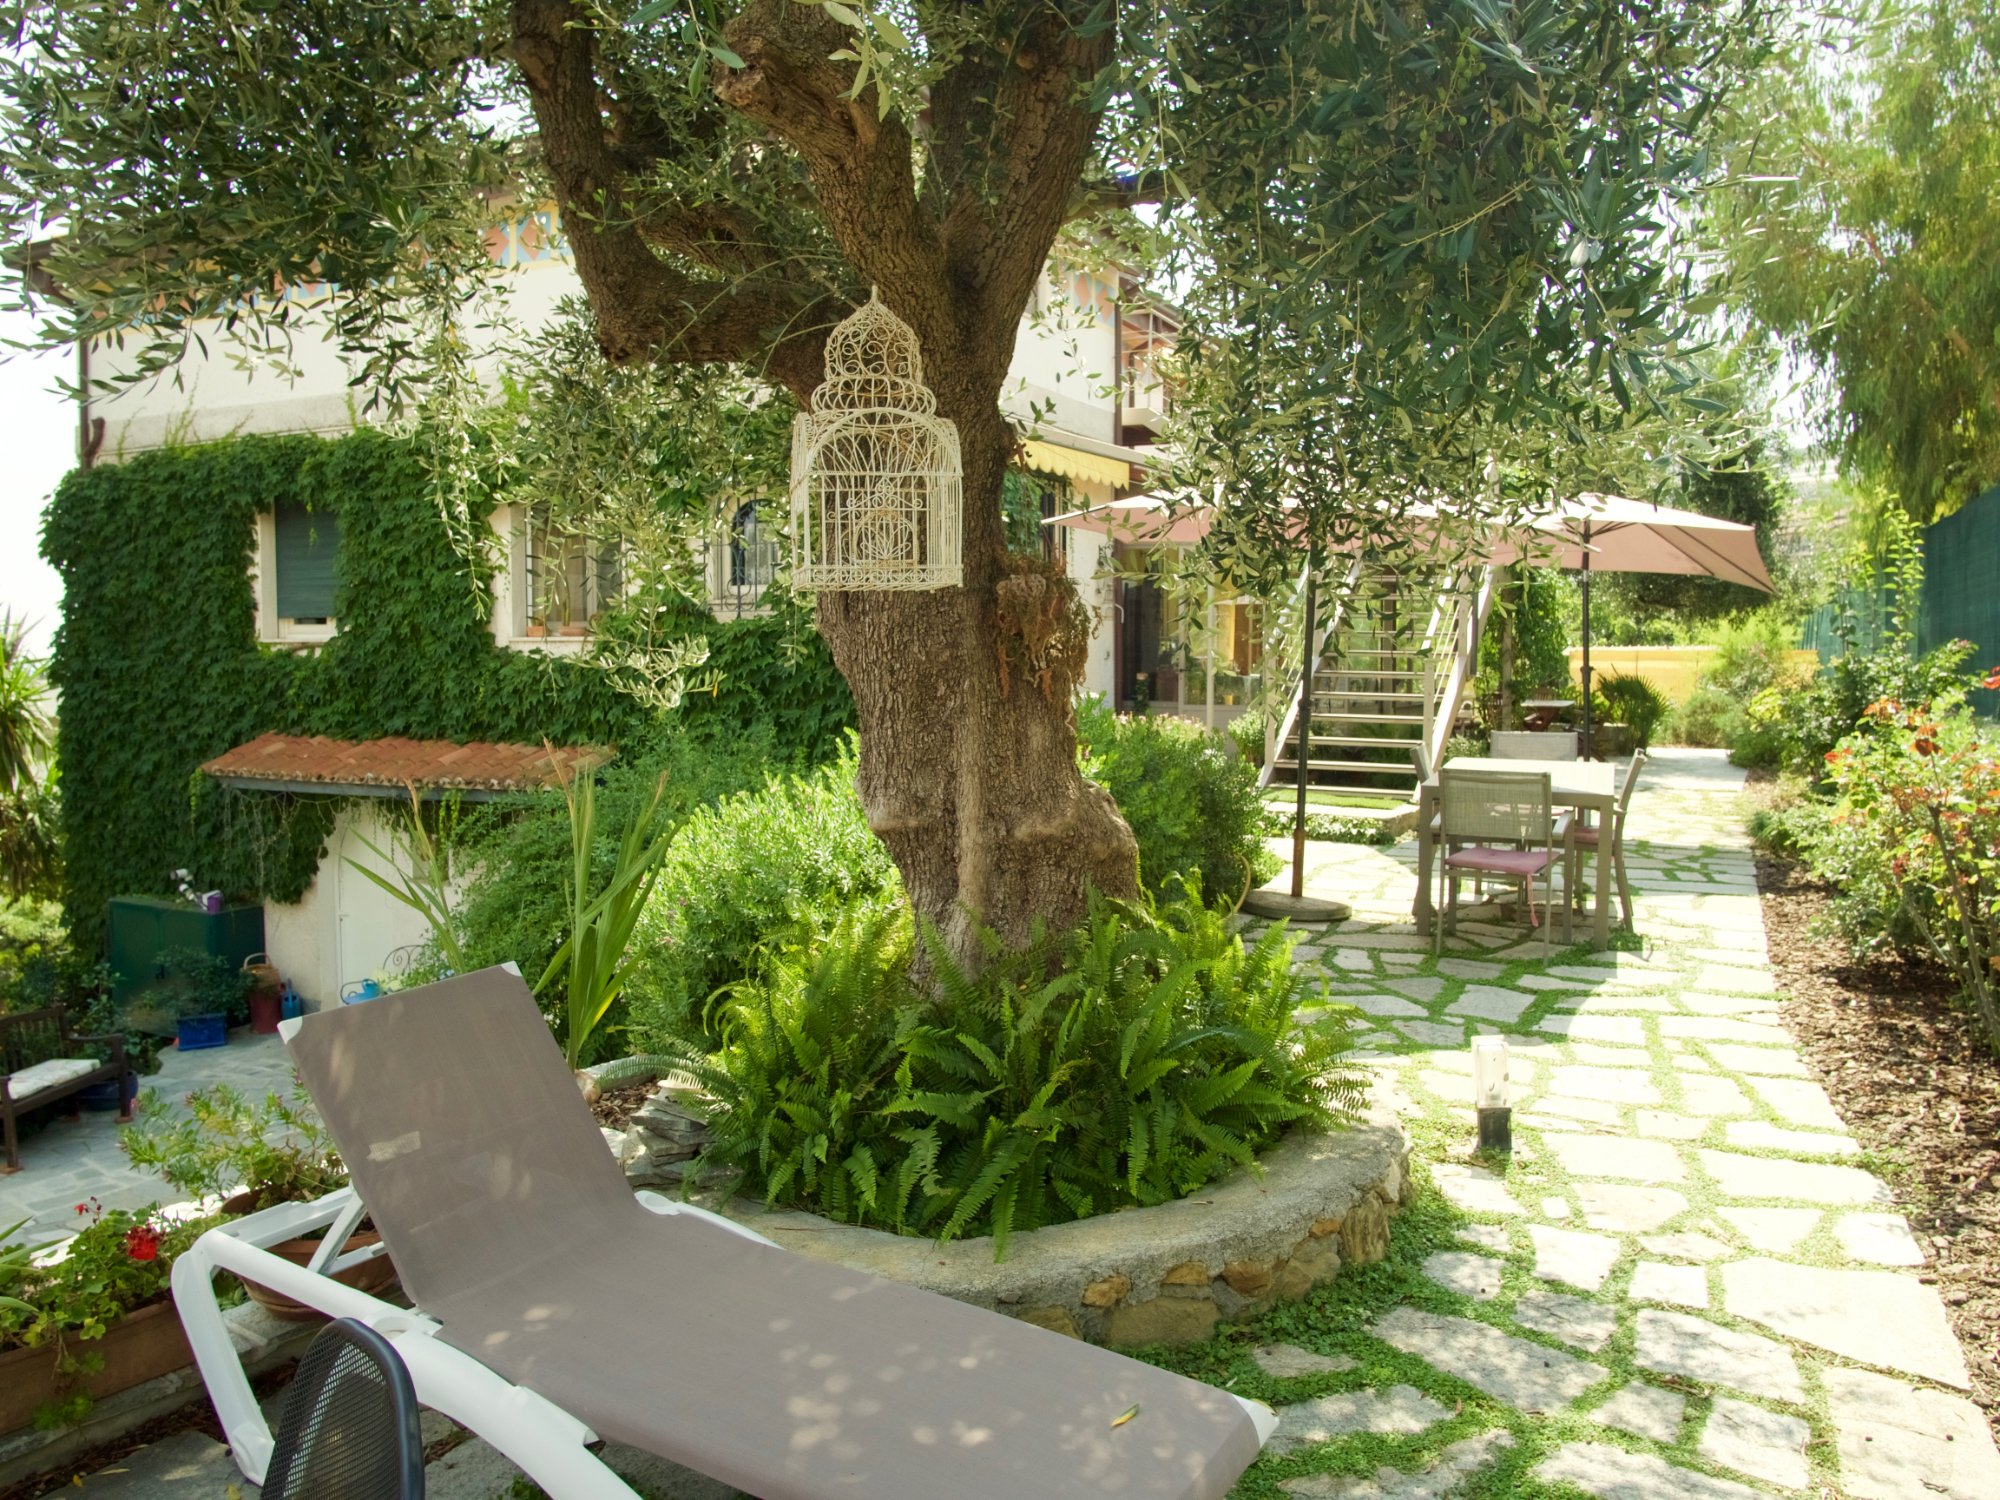 Ca' de Rossana Bed & Breakfast